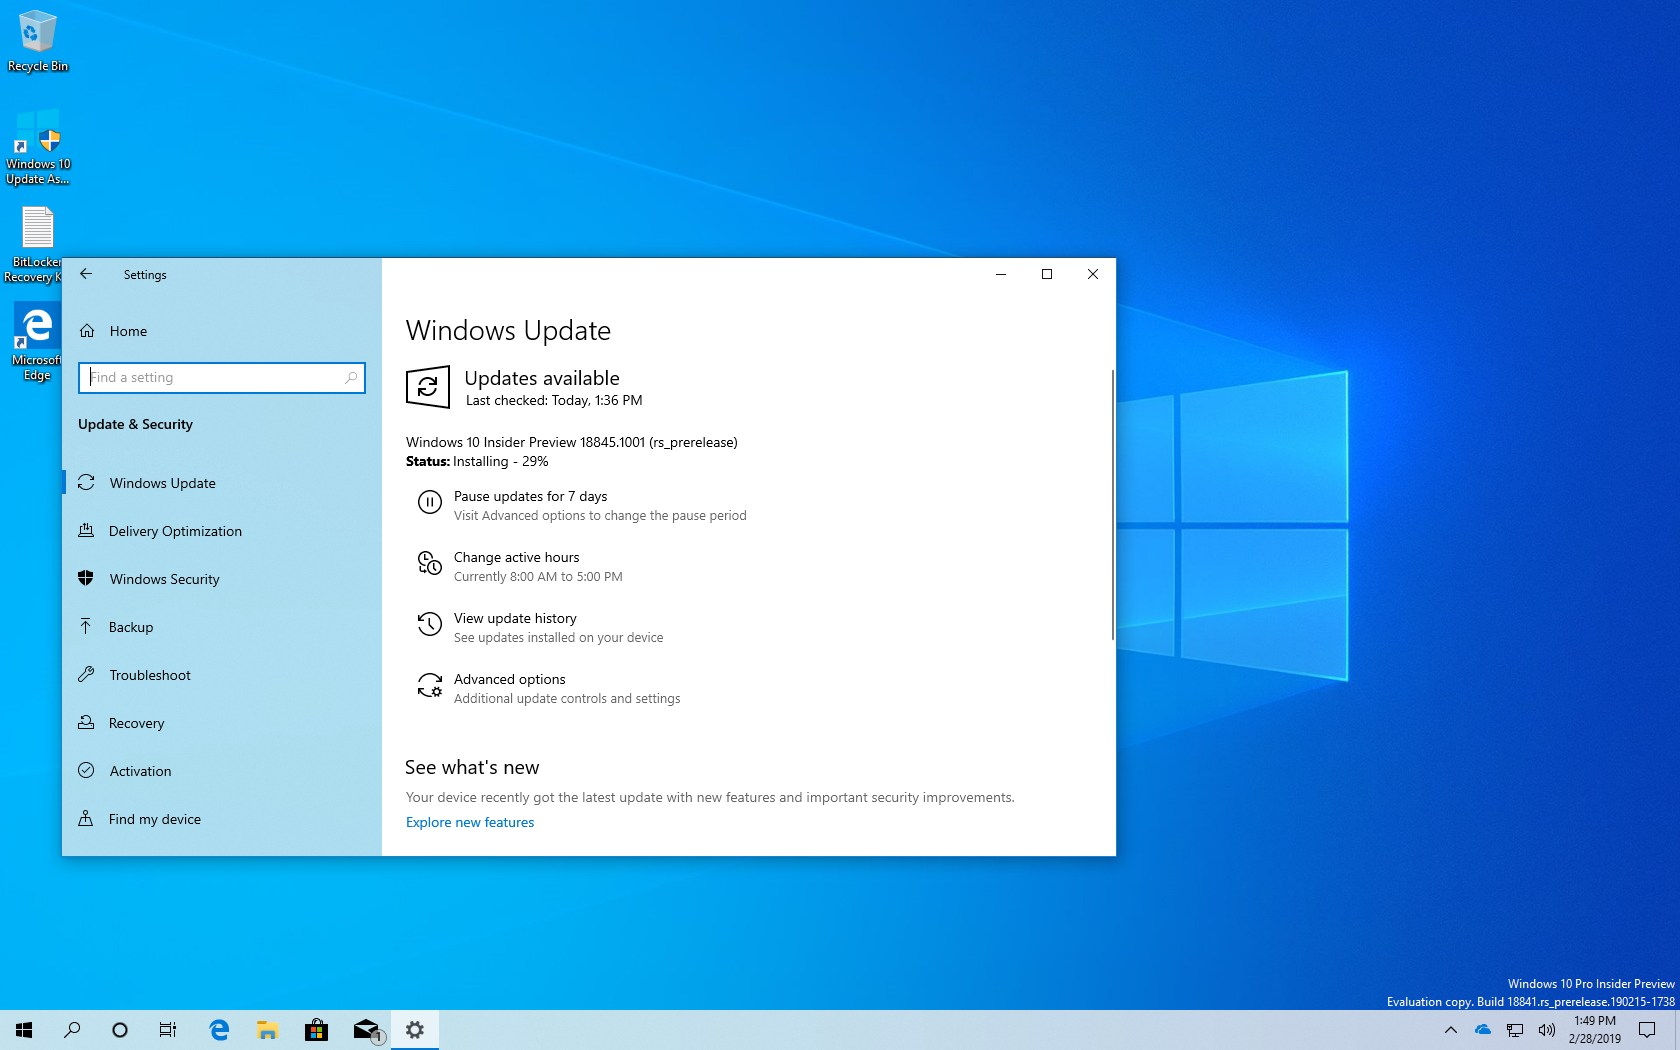 Windows 10 build 18845 (20H1) releases with improvements • Pureinfotech